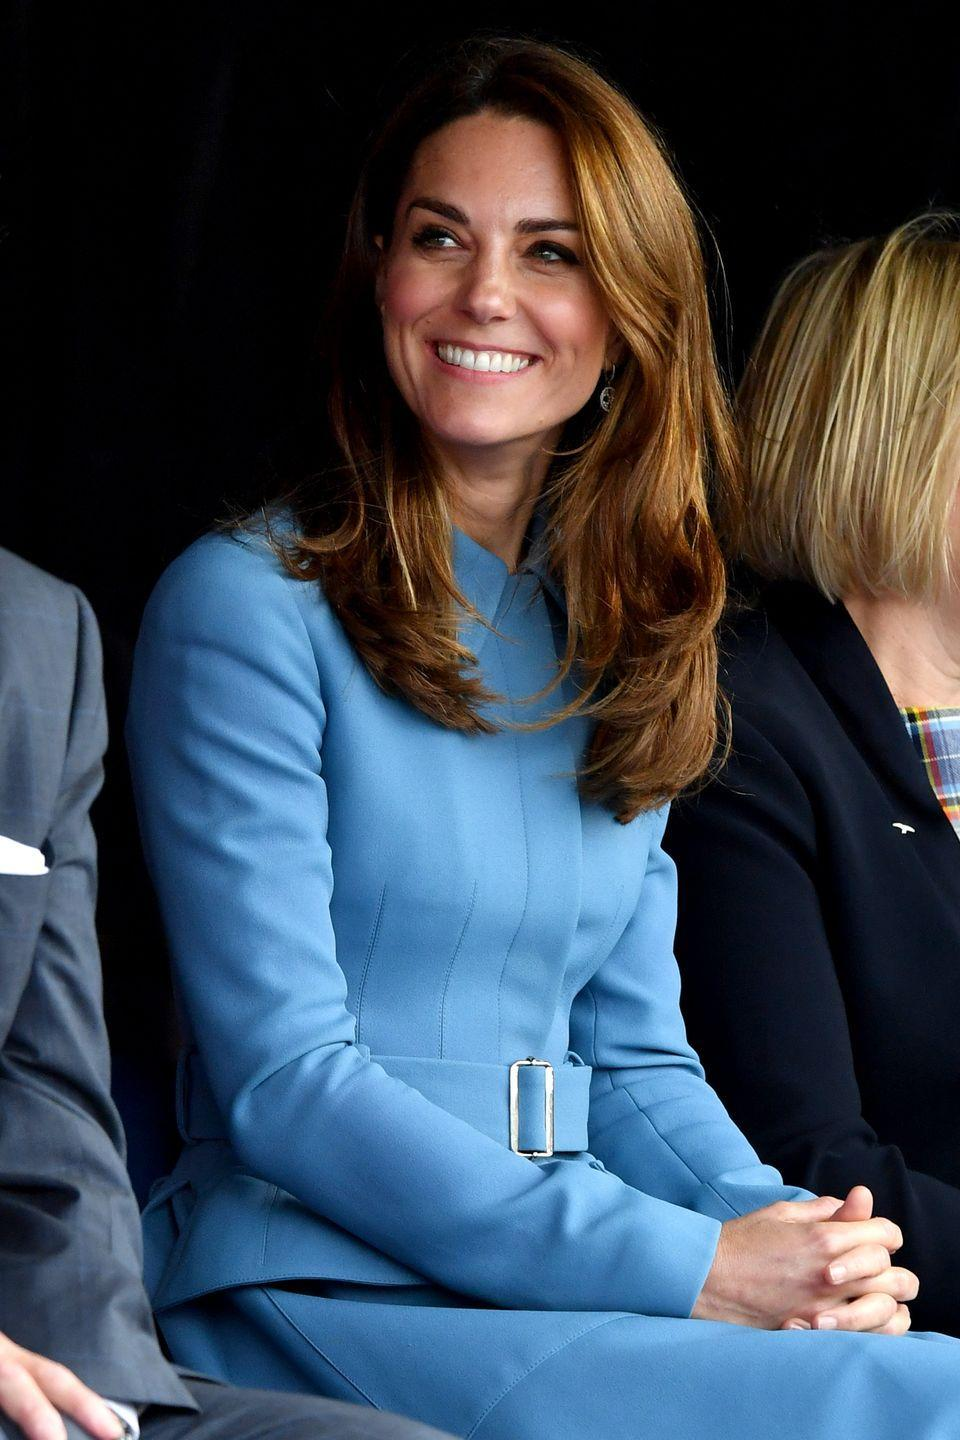 <p>To attend the naming ceremony for the RSS Sir David Attenborough ship in Birkenhead, Kate chose to recycle this periwinkle blue coat by Alexander McQueen. </p>